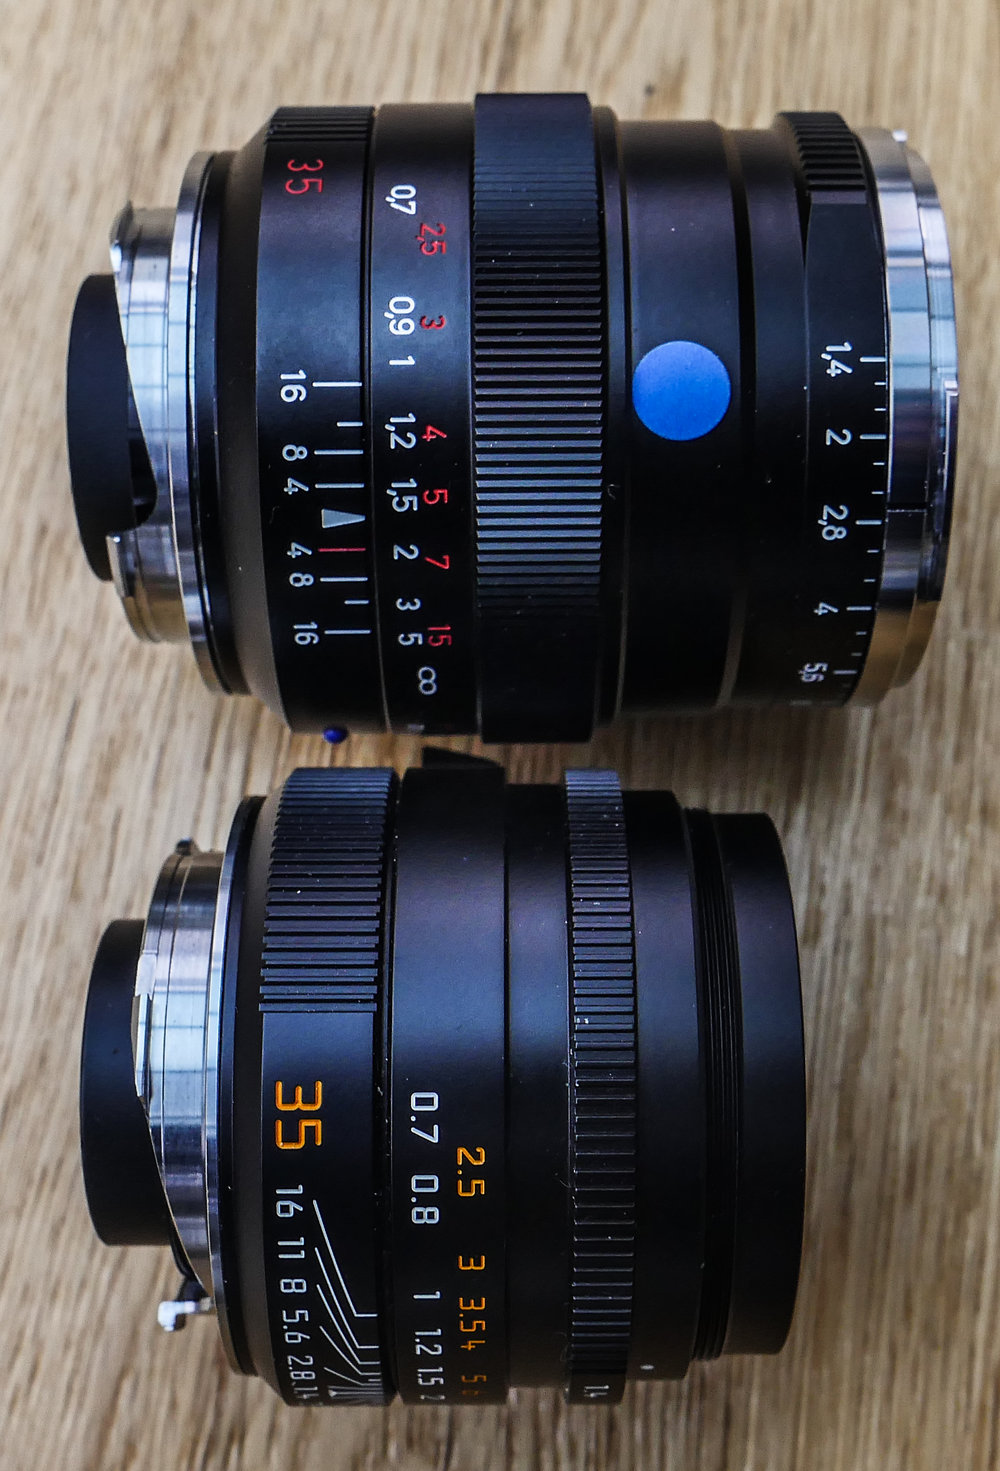 Design cues: The Zeiss is longer and heavier than the Leica. At first glance it looks more like the 50mm Summilux. Note the 1/3-stop aperture ring on the Distagon compared with the traditional 1/2-stop calibration of the Summilux (although not visible here). The large, ribbed focus ring on the Zeiss lens is much easier to grip than the smooth ring of the Leica. However, the large concave focus tab of the Summilux (hidden in this picture) is preferable to the small domed version on the Distagon. The (supplied) hood of the Summilux screws into the external thread seen above. The hood for the Distagon (not supplied) attaches to the chrome bayonet ring